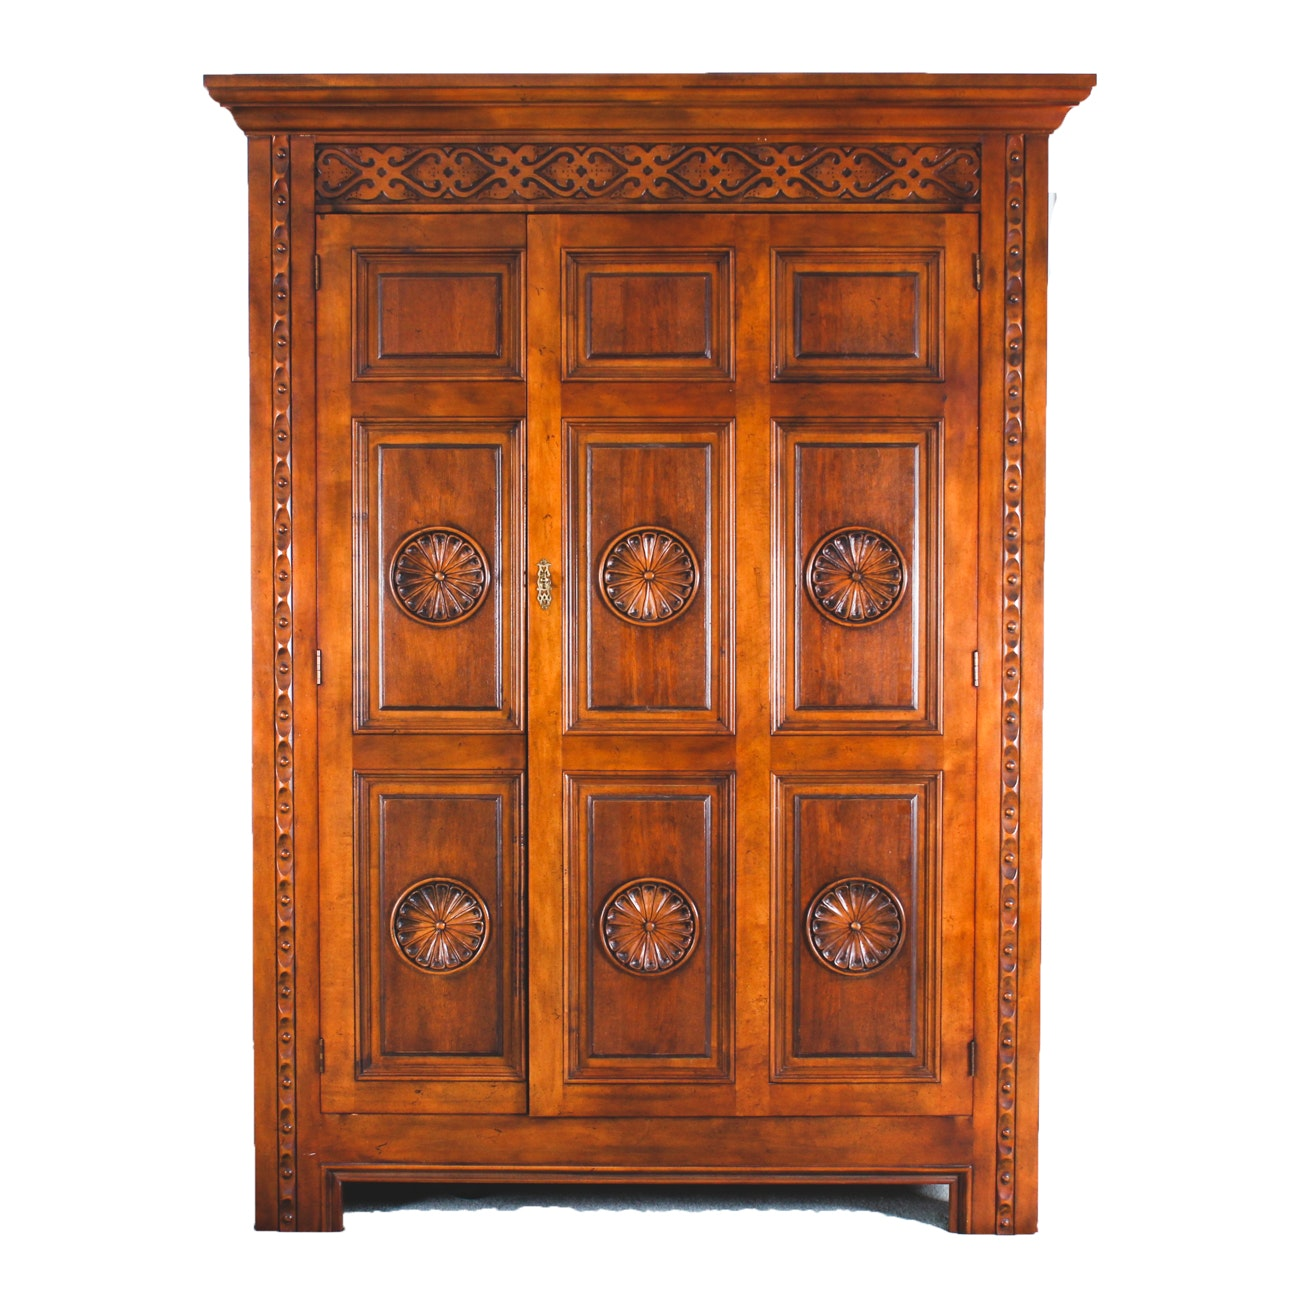 Ordinaire Renaissance Revival Style Armoire By Baker Furniture ...